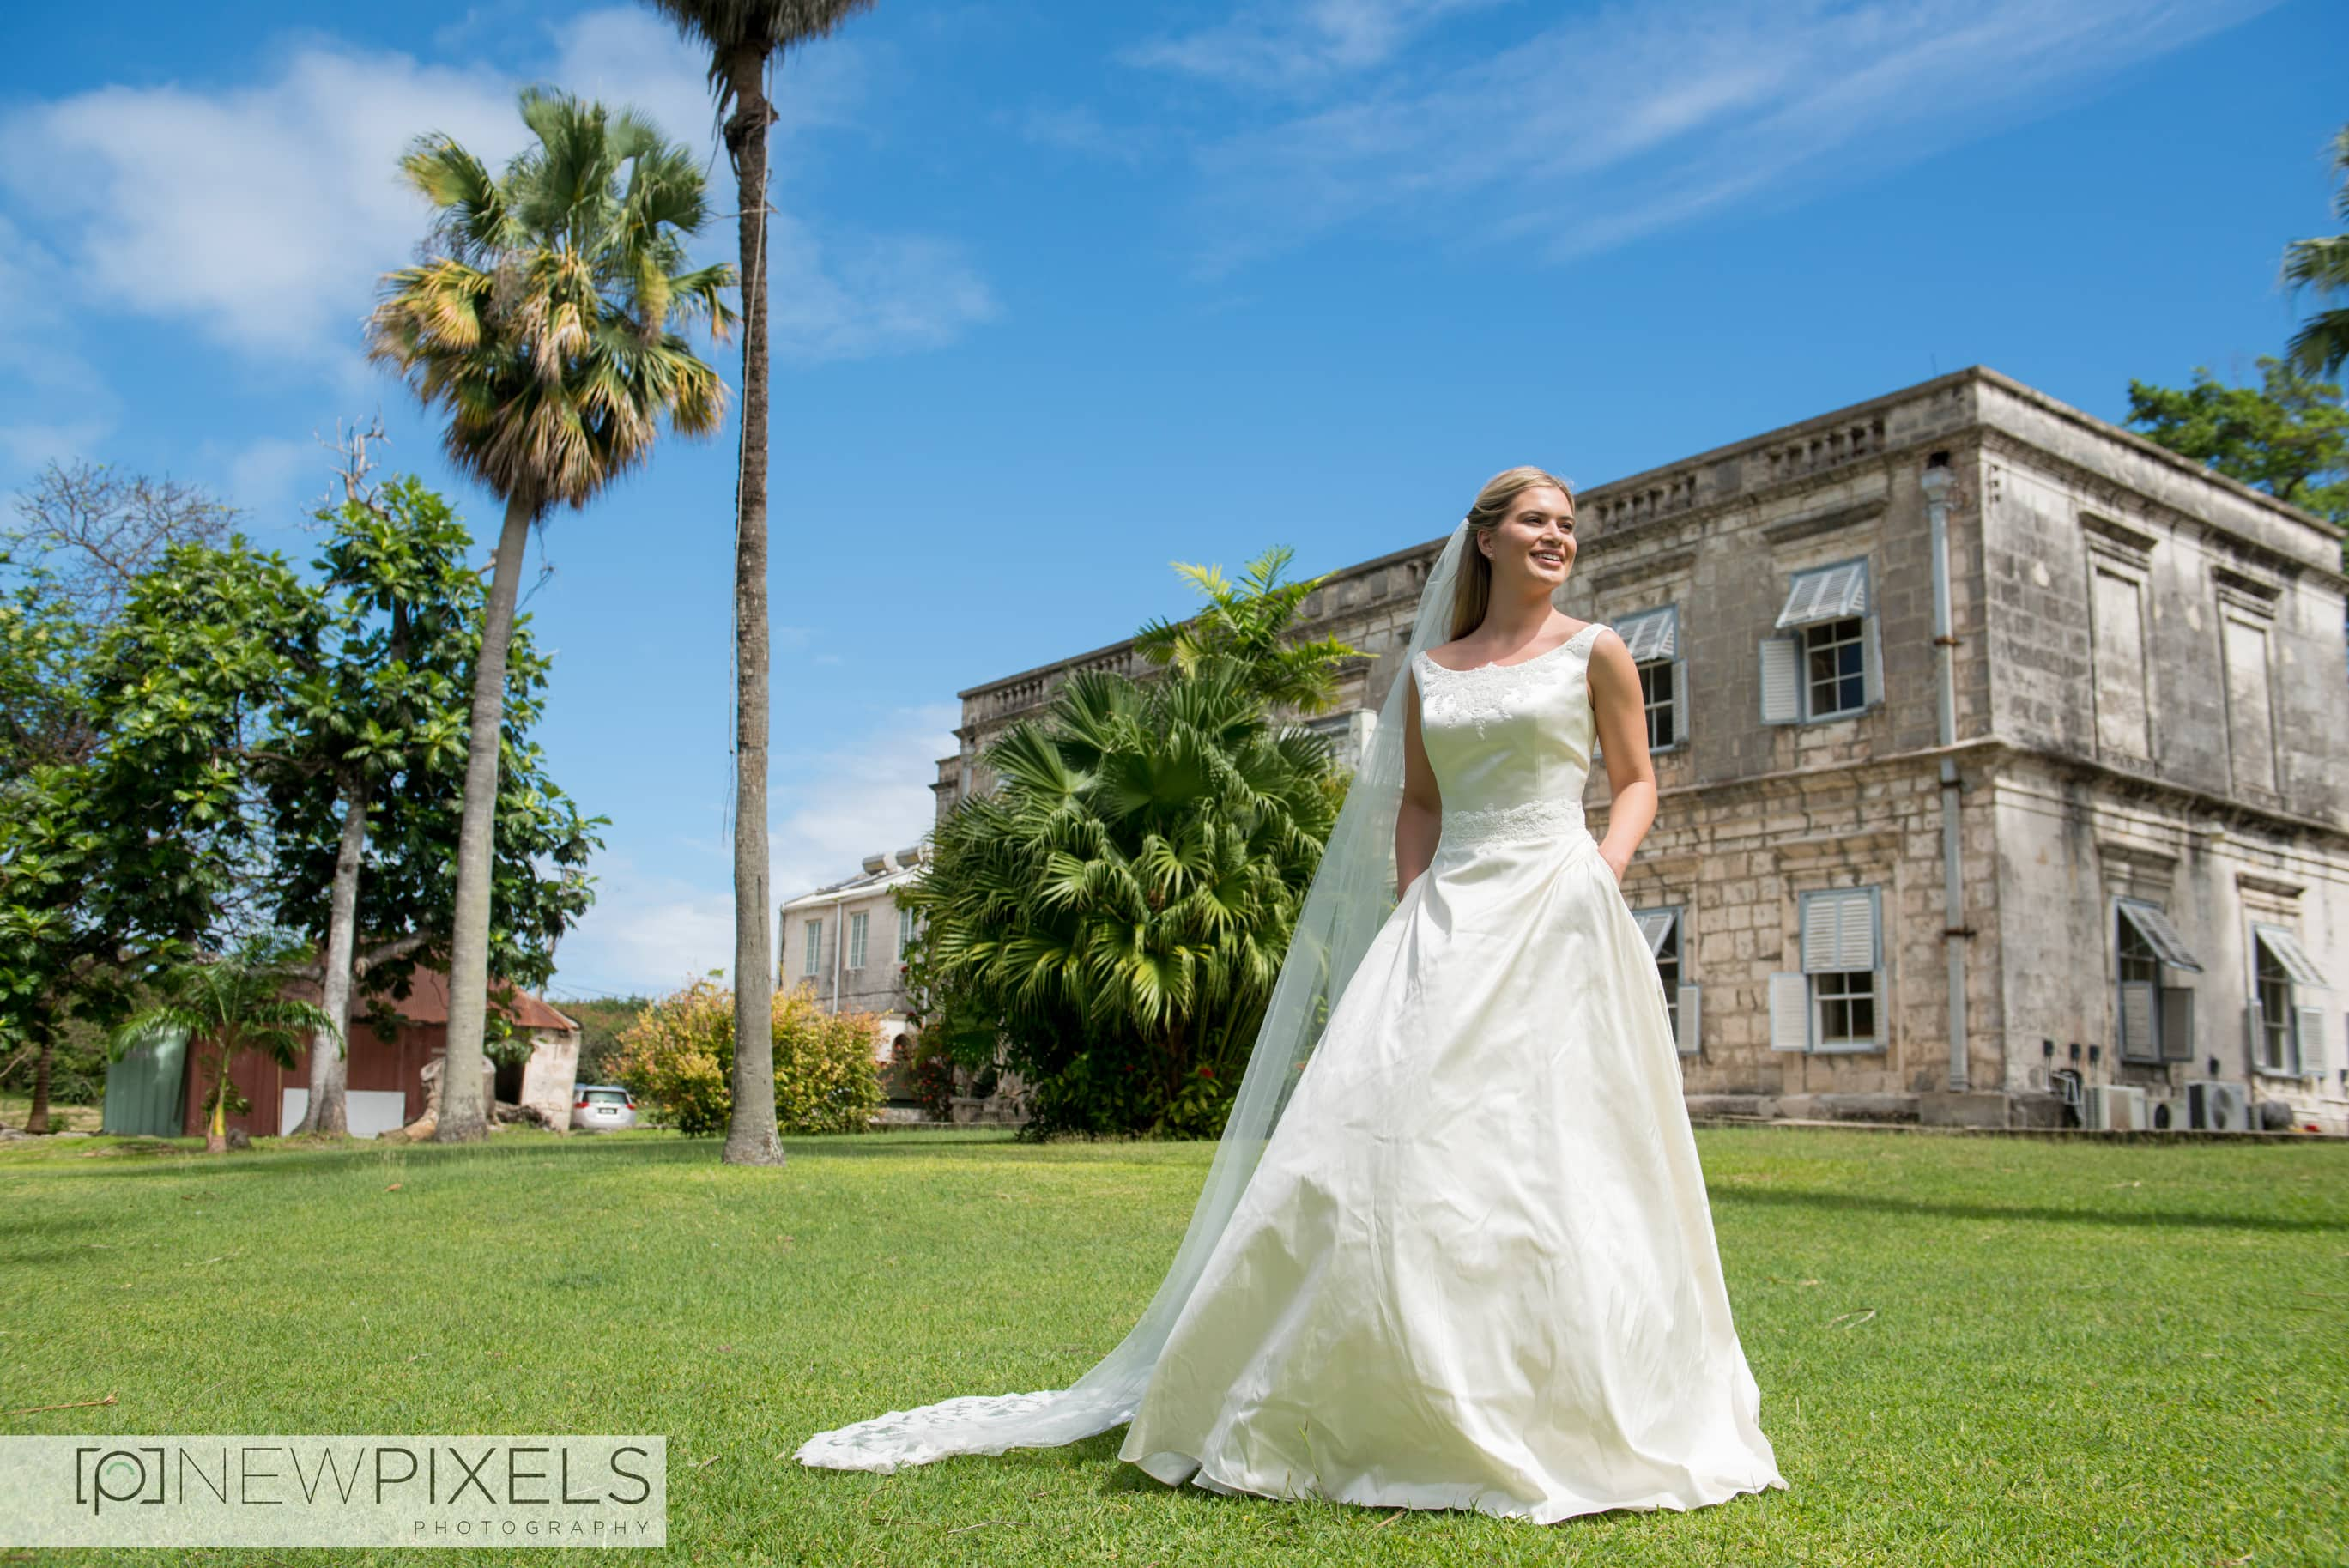 Destination Wedding Photographer- New Pixels-20